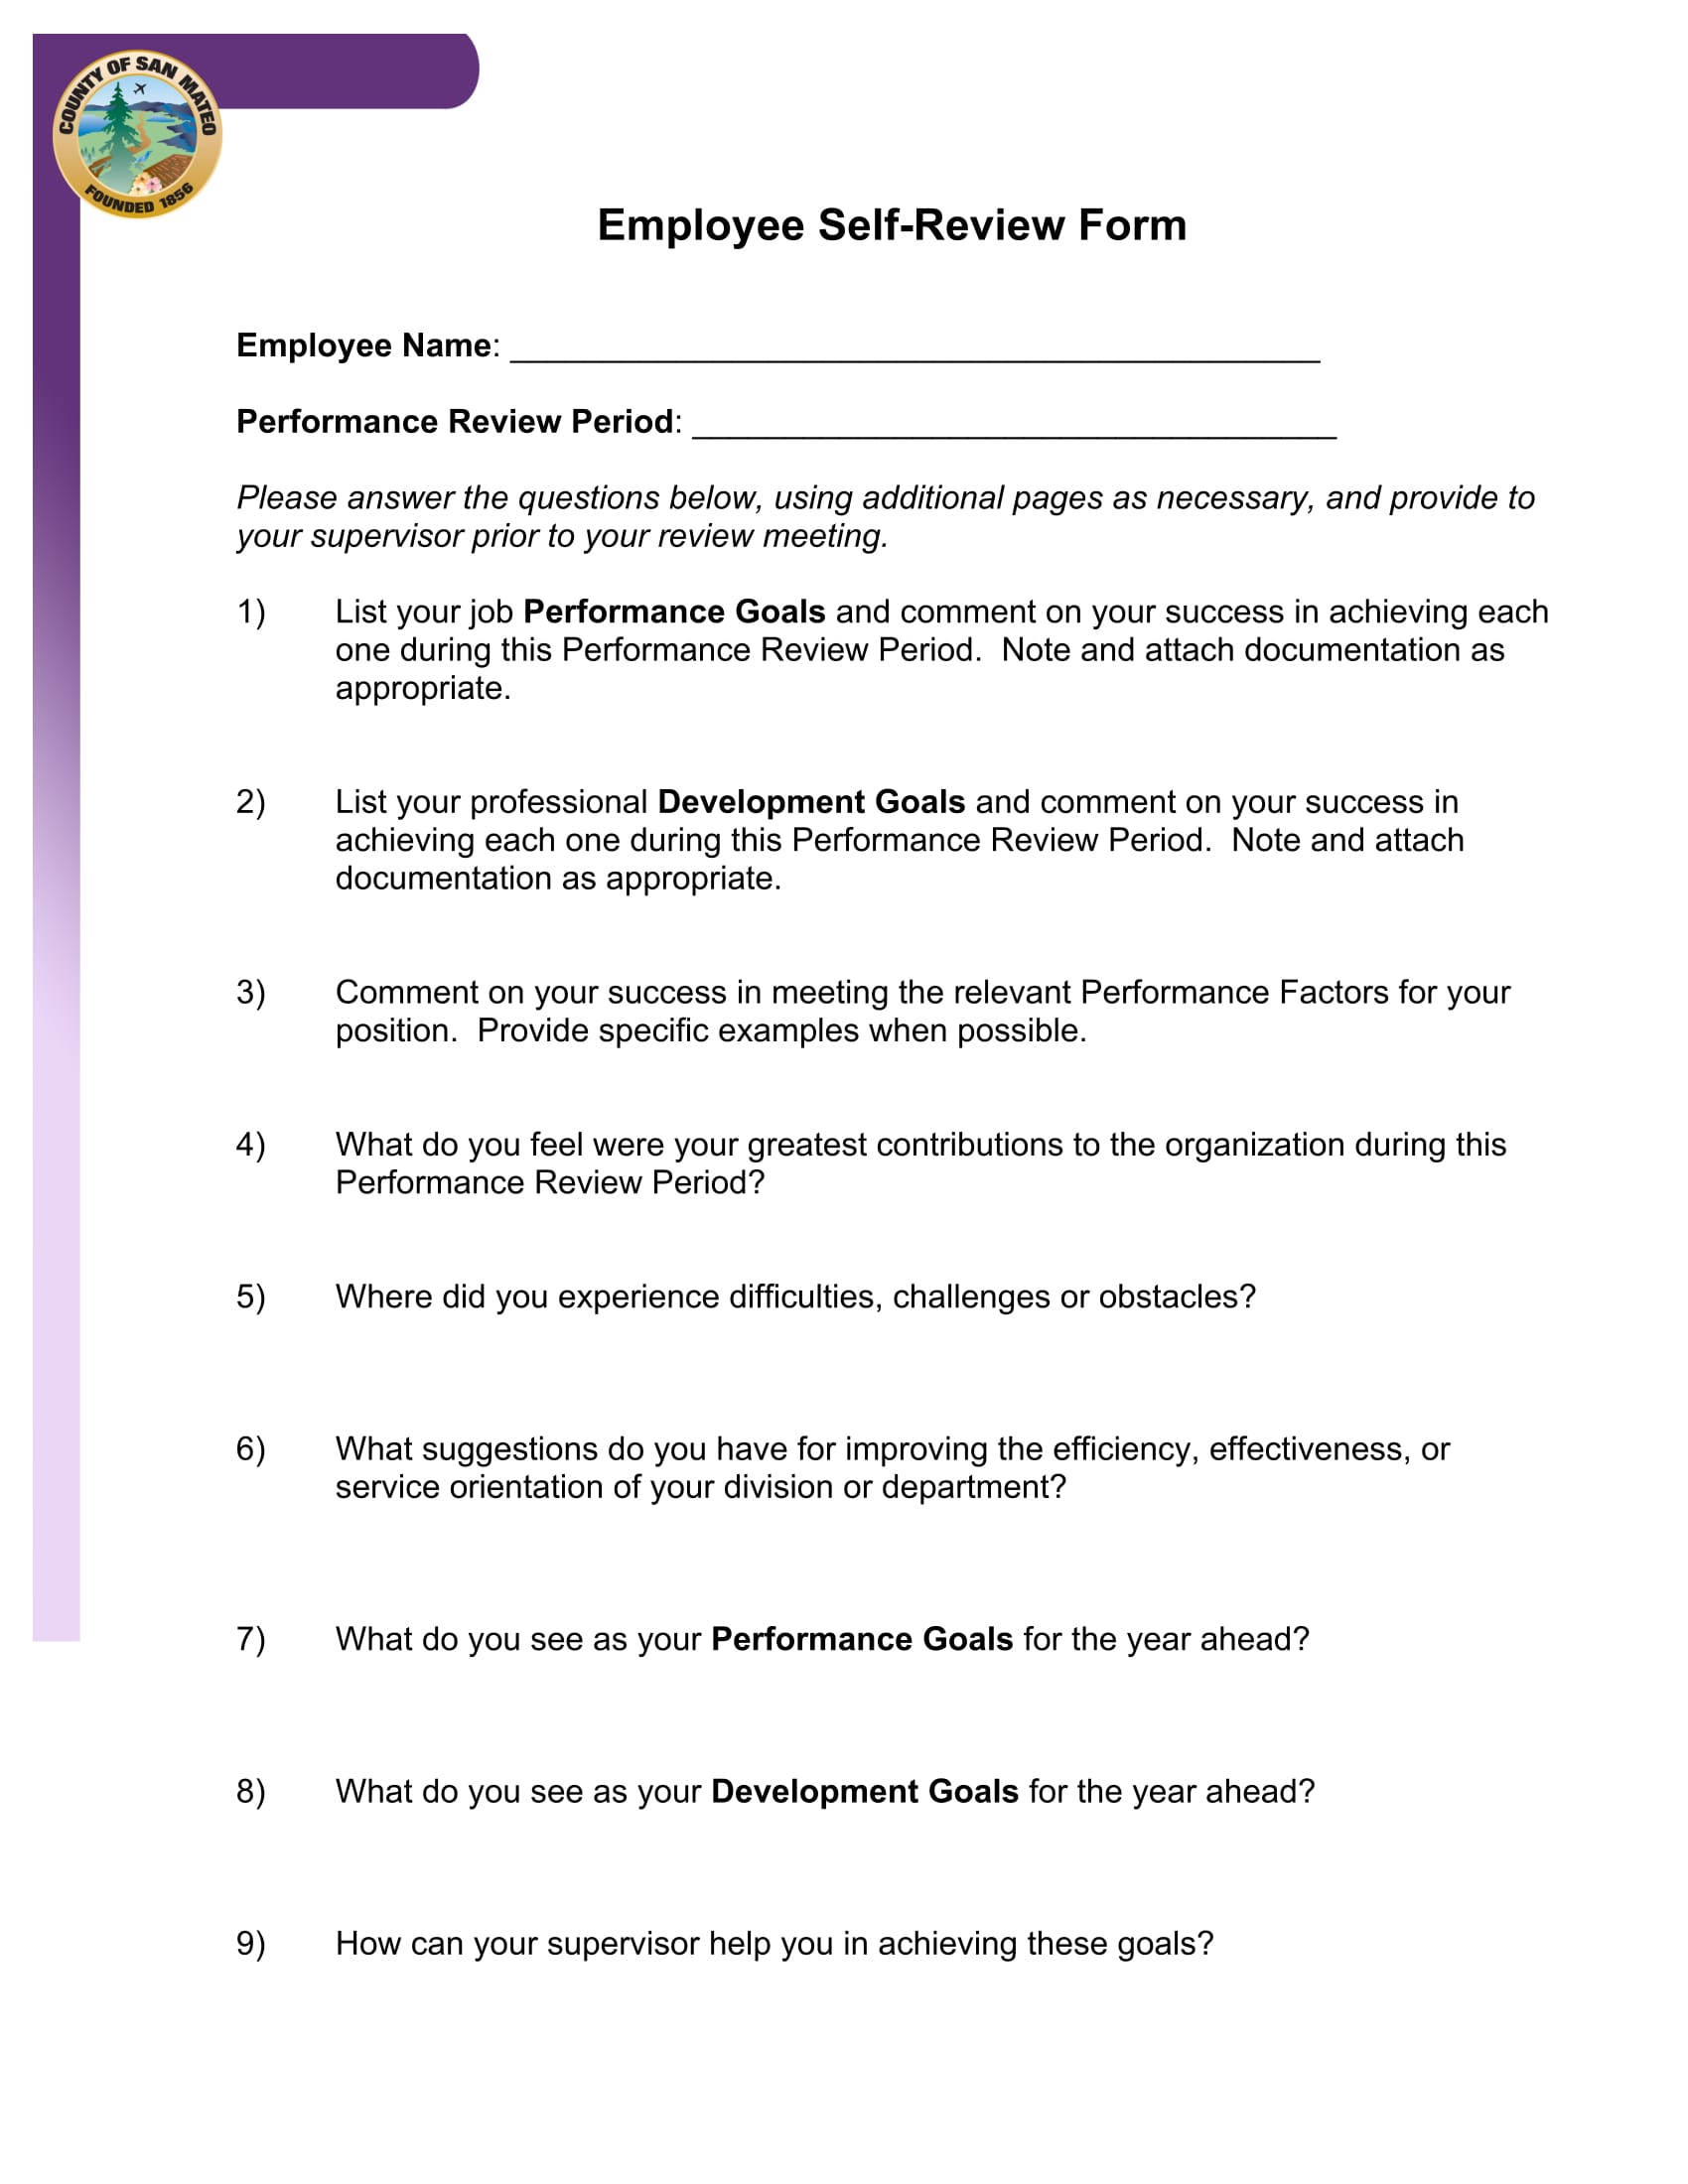 employee self review form 1